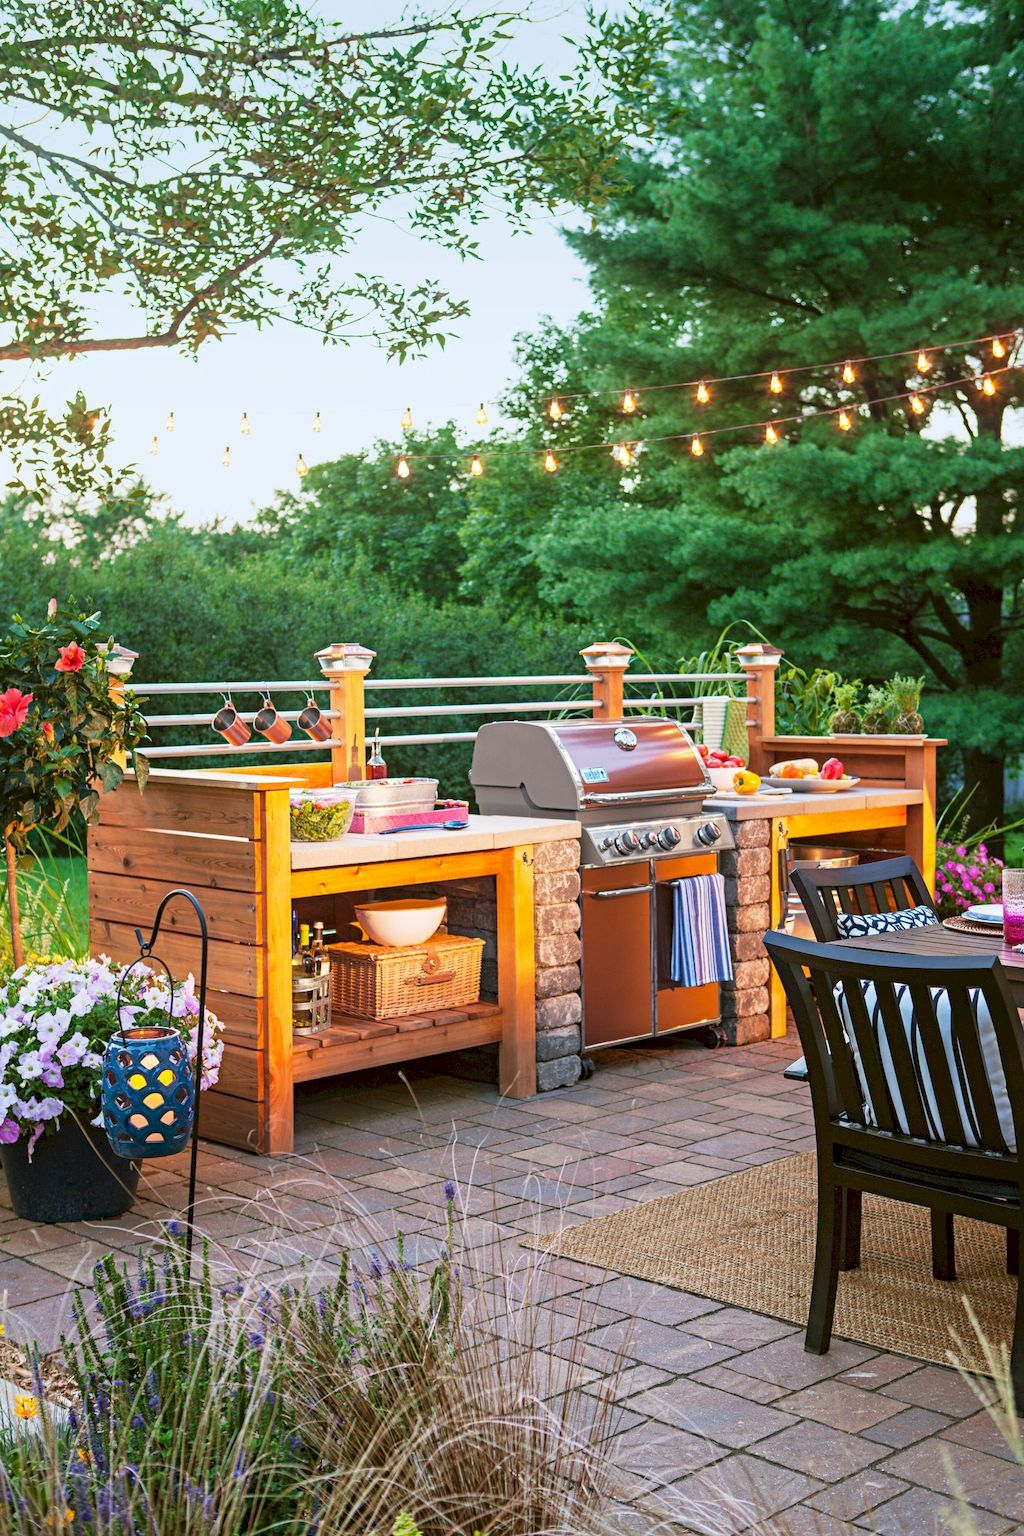 Adorable 46 Outdoor Kitchen Ideas on A Budget https://besideroom.com on budget game room ideas, budget walkway ideas, budget furniture ideas, budget driveway ideas, budget storage ideas, budget family room ideas, budget tile ideas, budget garden ideas, budget master bedroom ideas, budget pool ideas, budget garage ideas, budget retaining wall ideas, budget living room ideas, budget shower ideas, budget gazebo ideas, budget fence ideas, budget bar ideas,